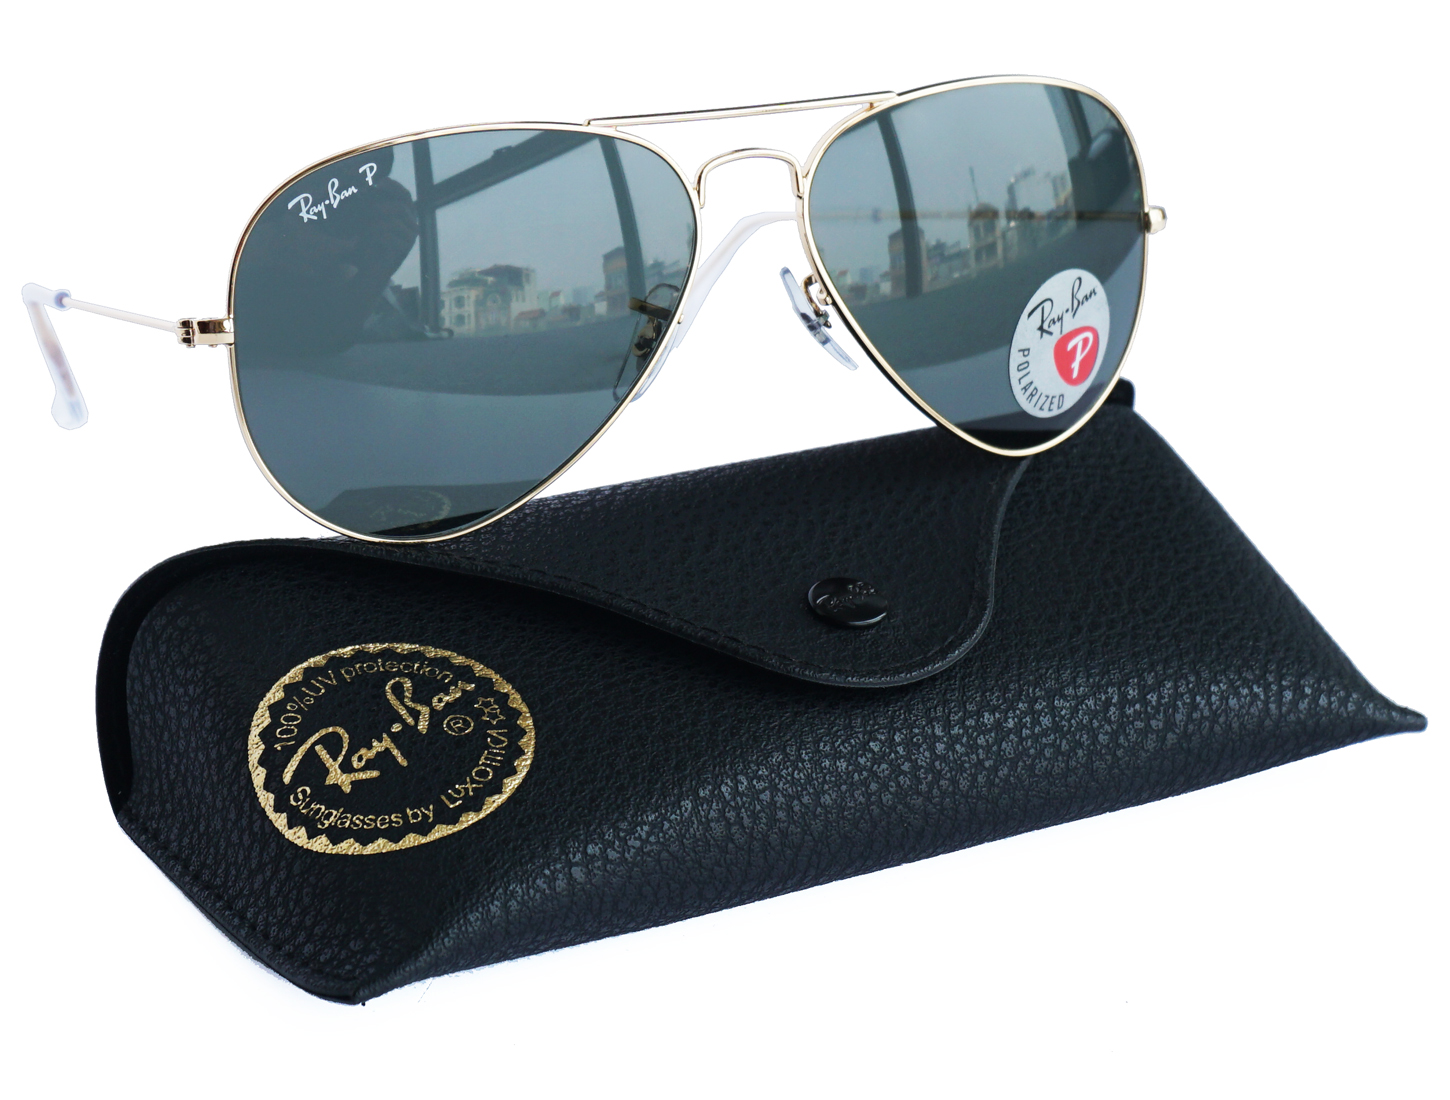 Ray-Ban 3025 Aviator Polarized Gold Green RB 3025 001/58 size 58]